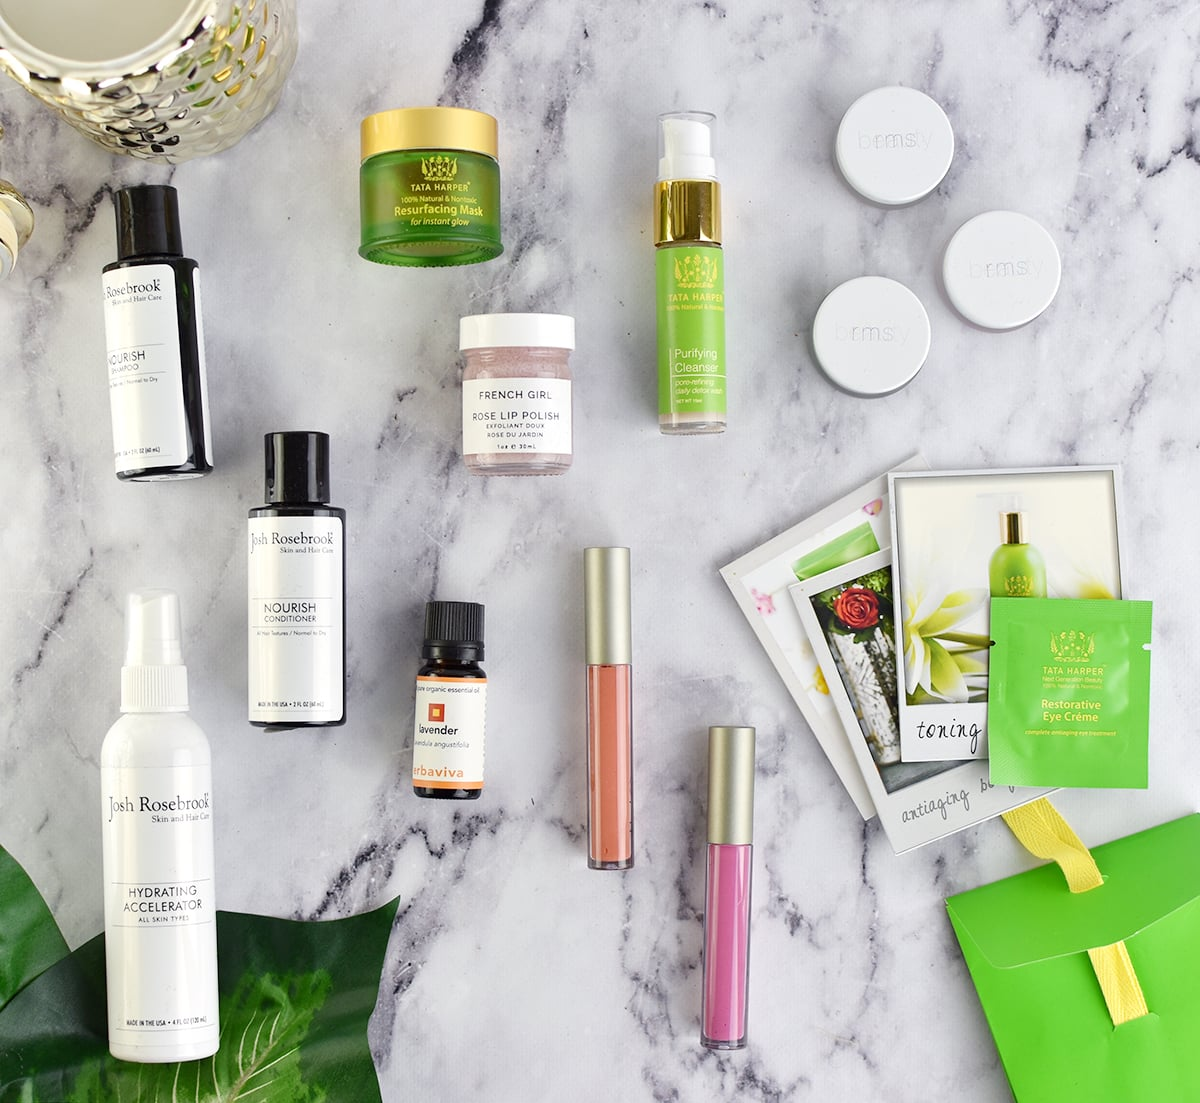 Green beauty haul from Green & Pure | oliveandivyblog.com